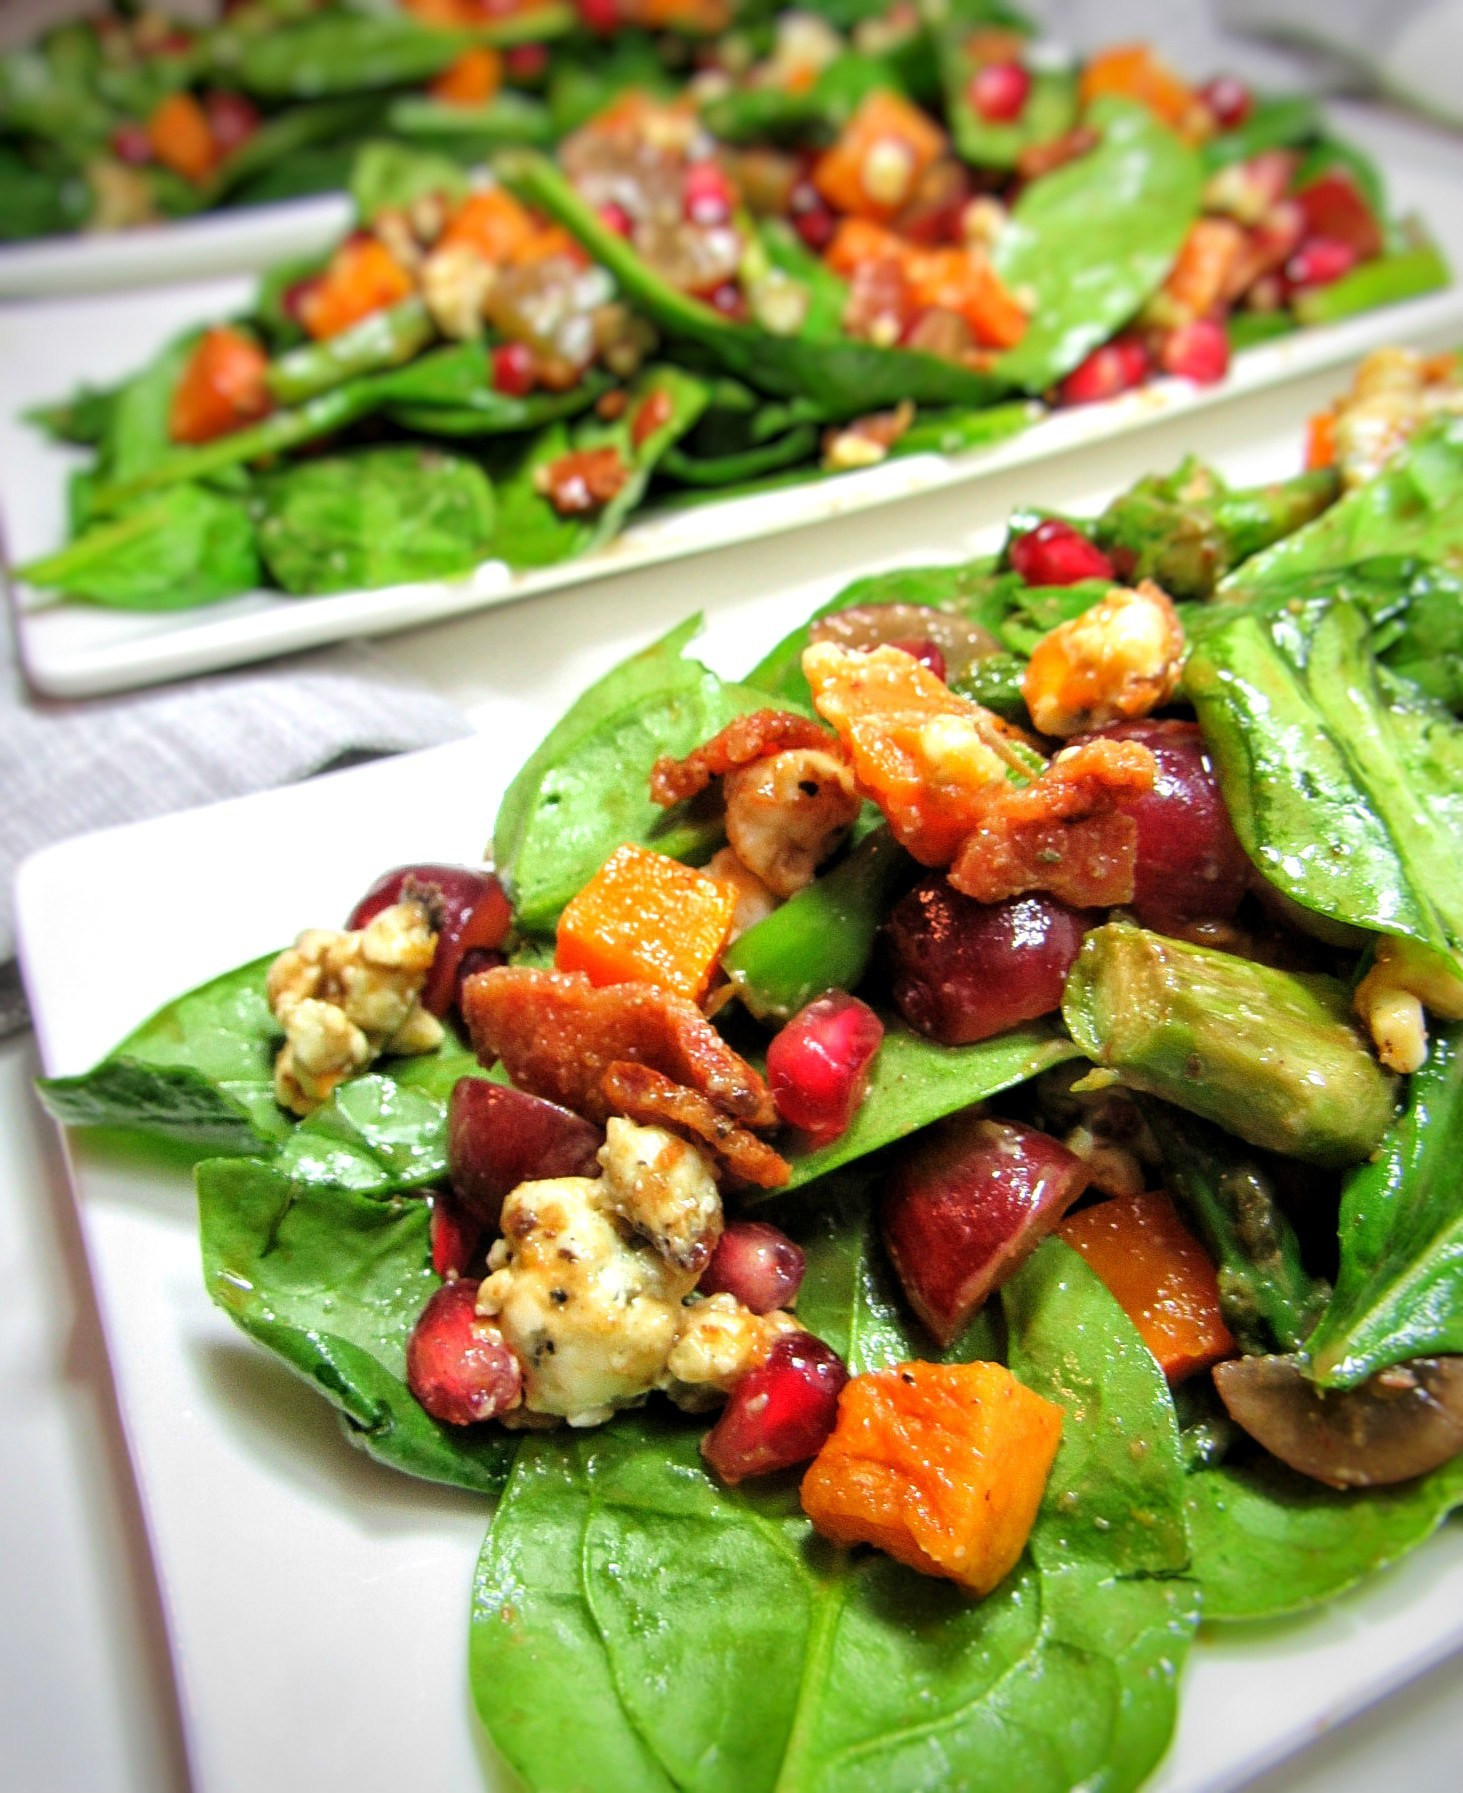 Salad For Thanksgiving Dinner  Thanksgiving Dinner Salad with Butternut Squash bits and